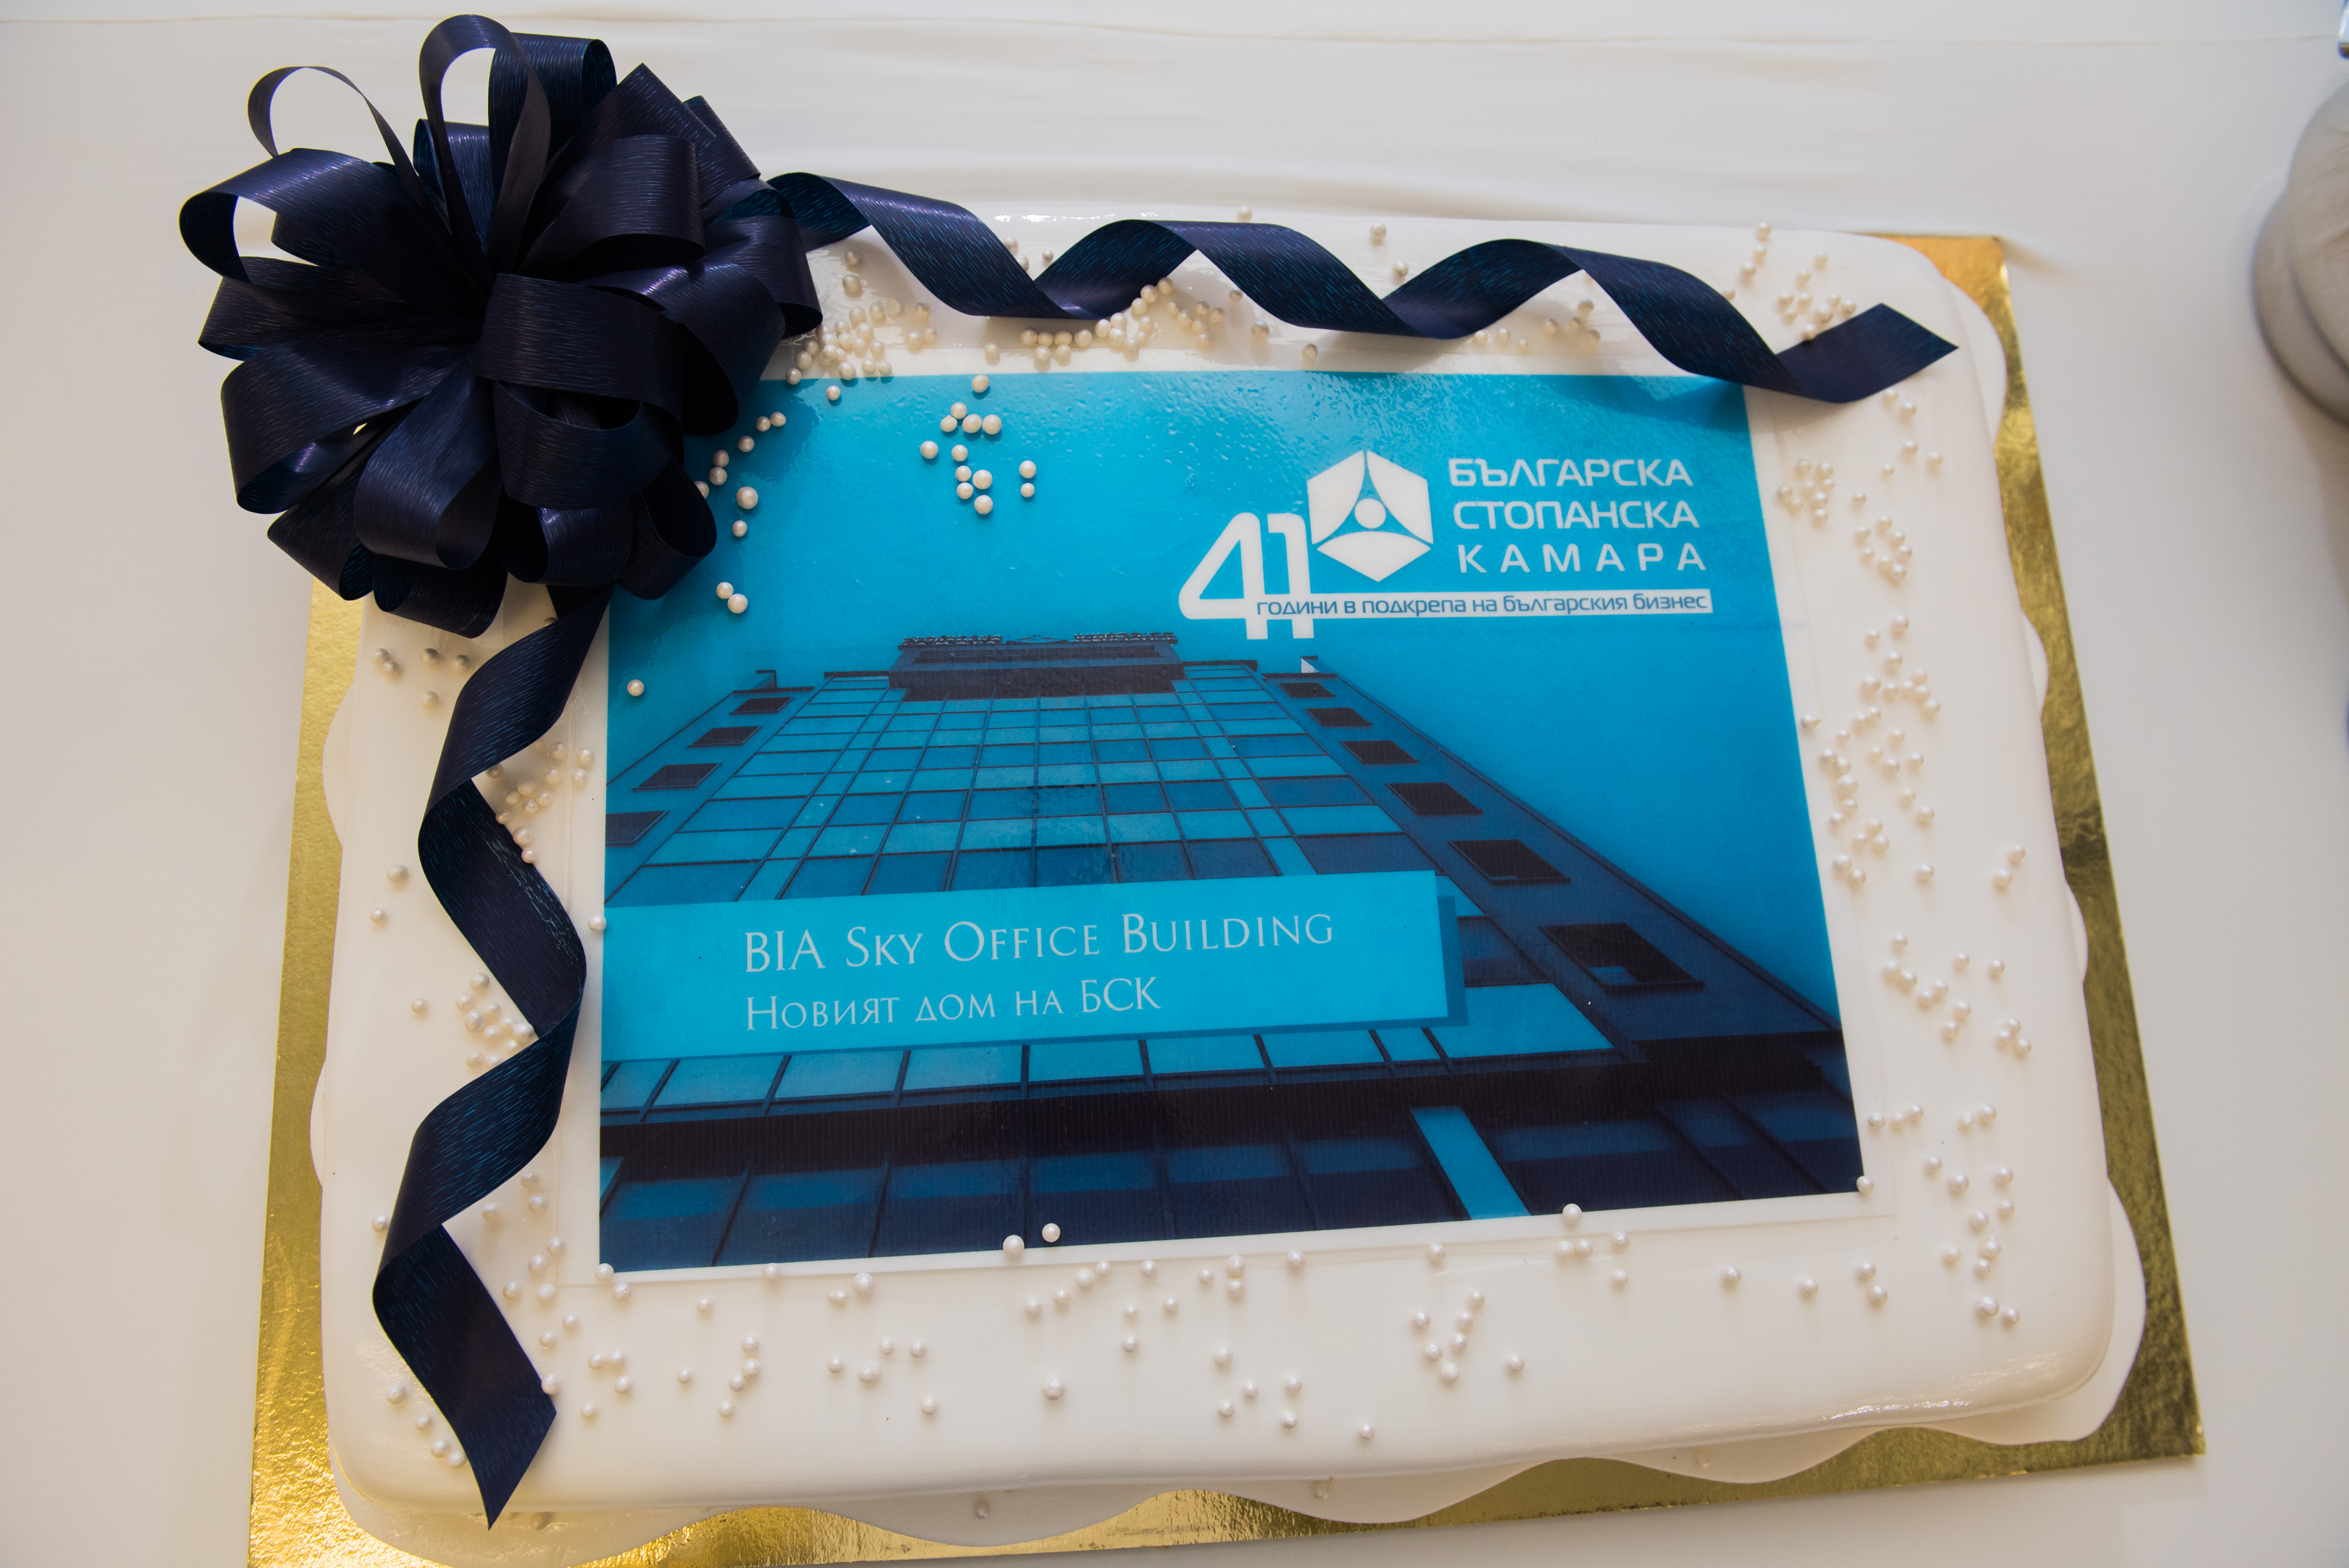 BIA anniversary in the brand new BIA SKY Building